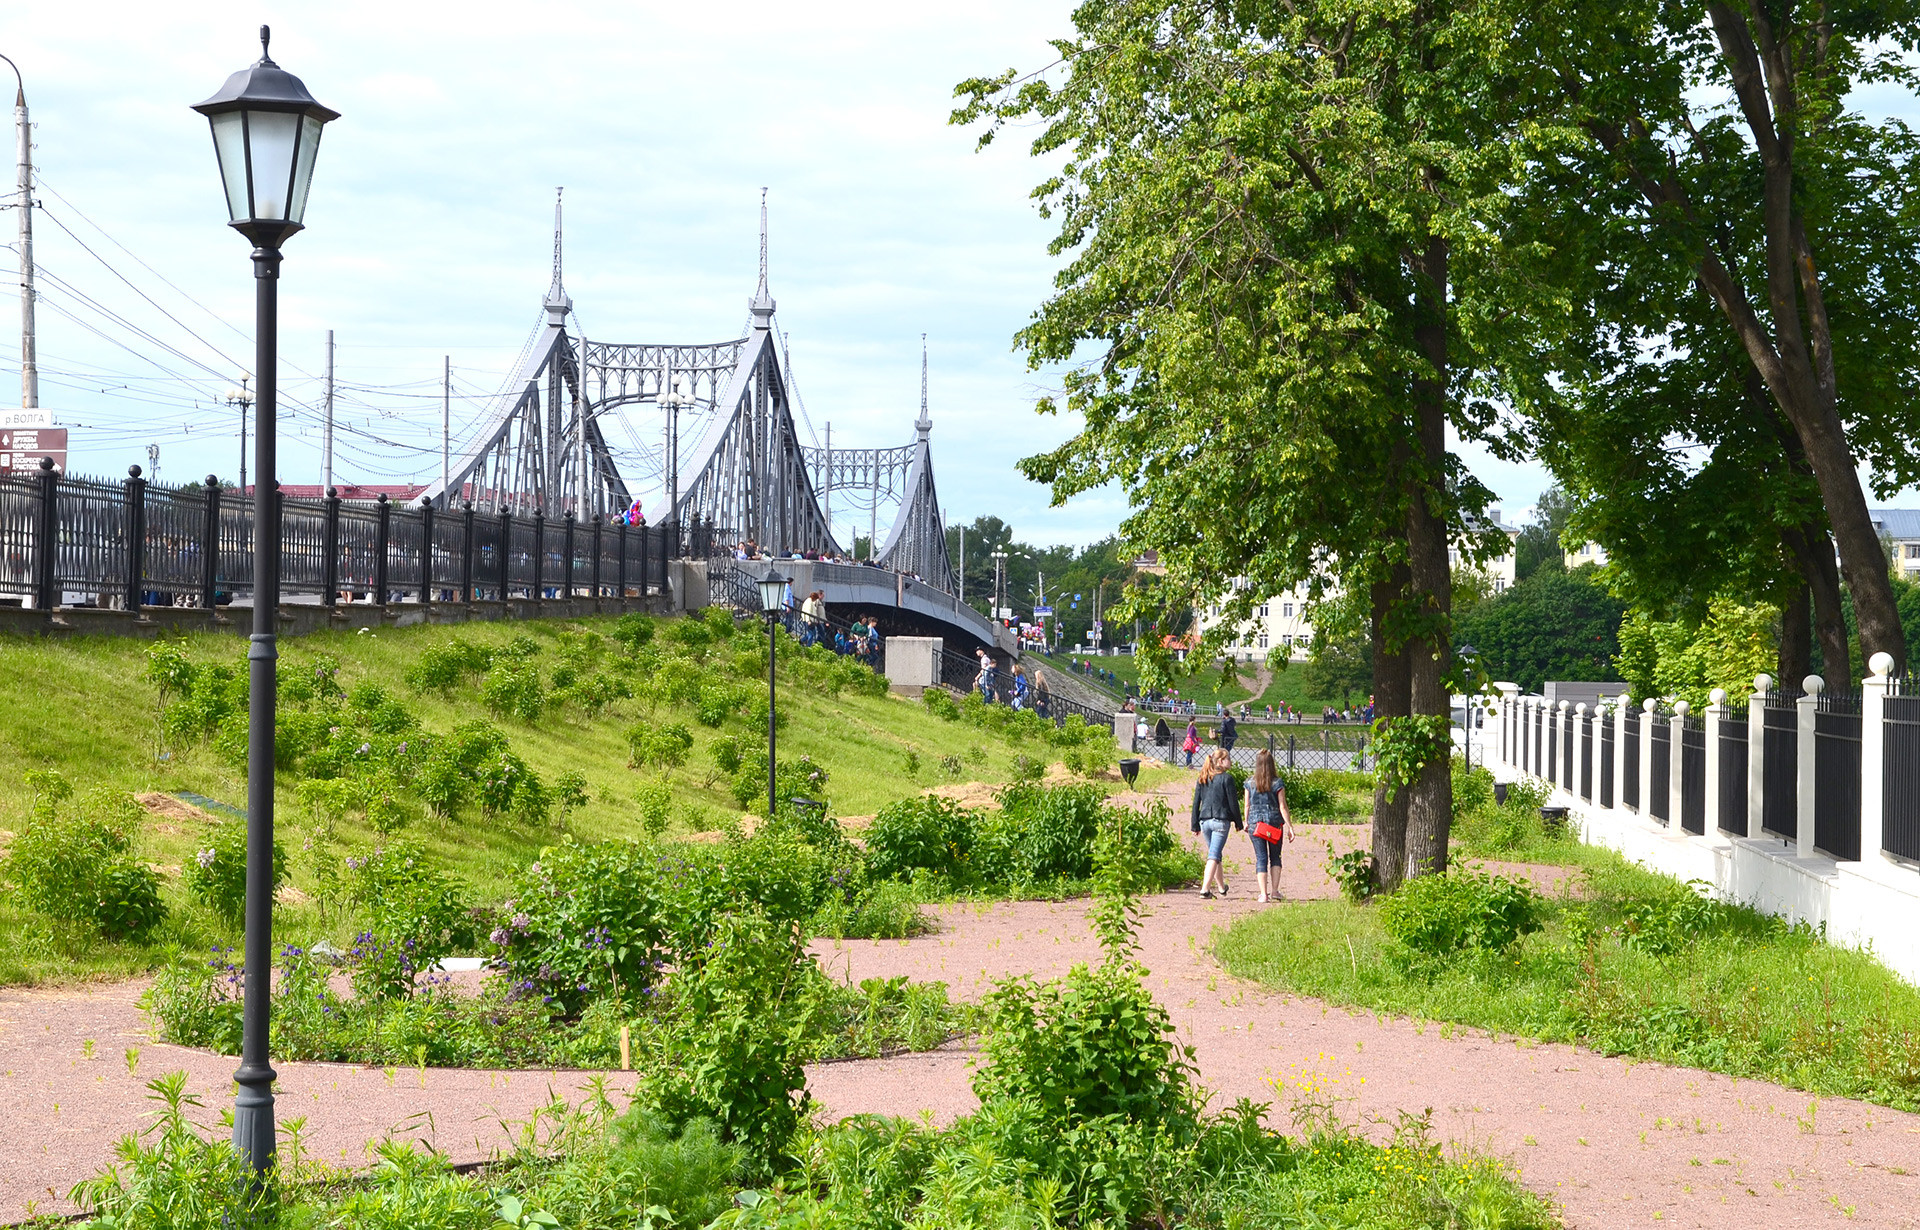 Tver's 'Old Bridge' is a copy of the famous metal bridge in the Hungarian capital, Budapest.